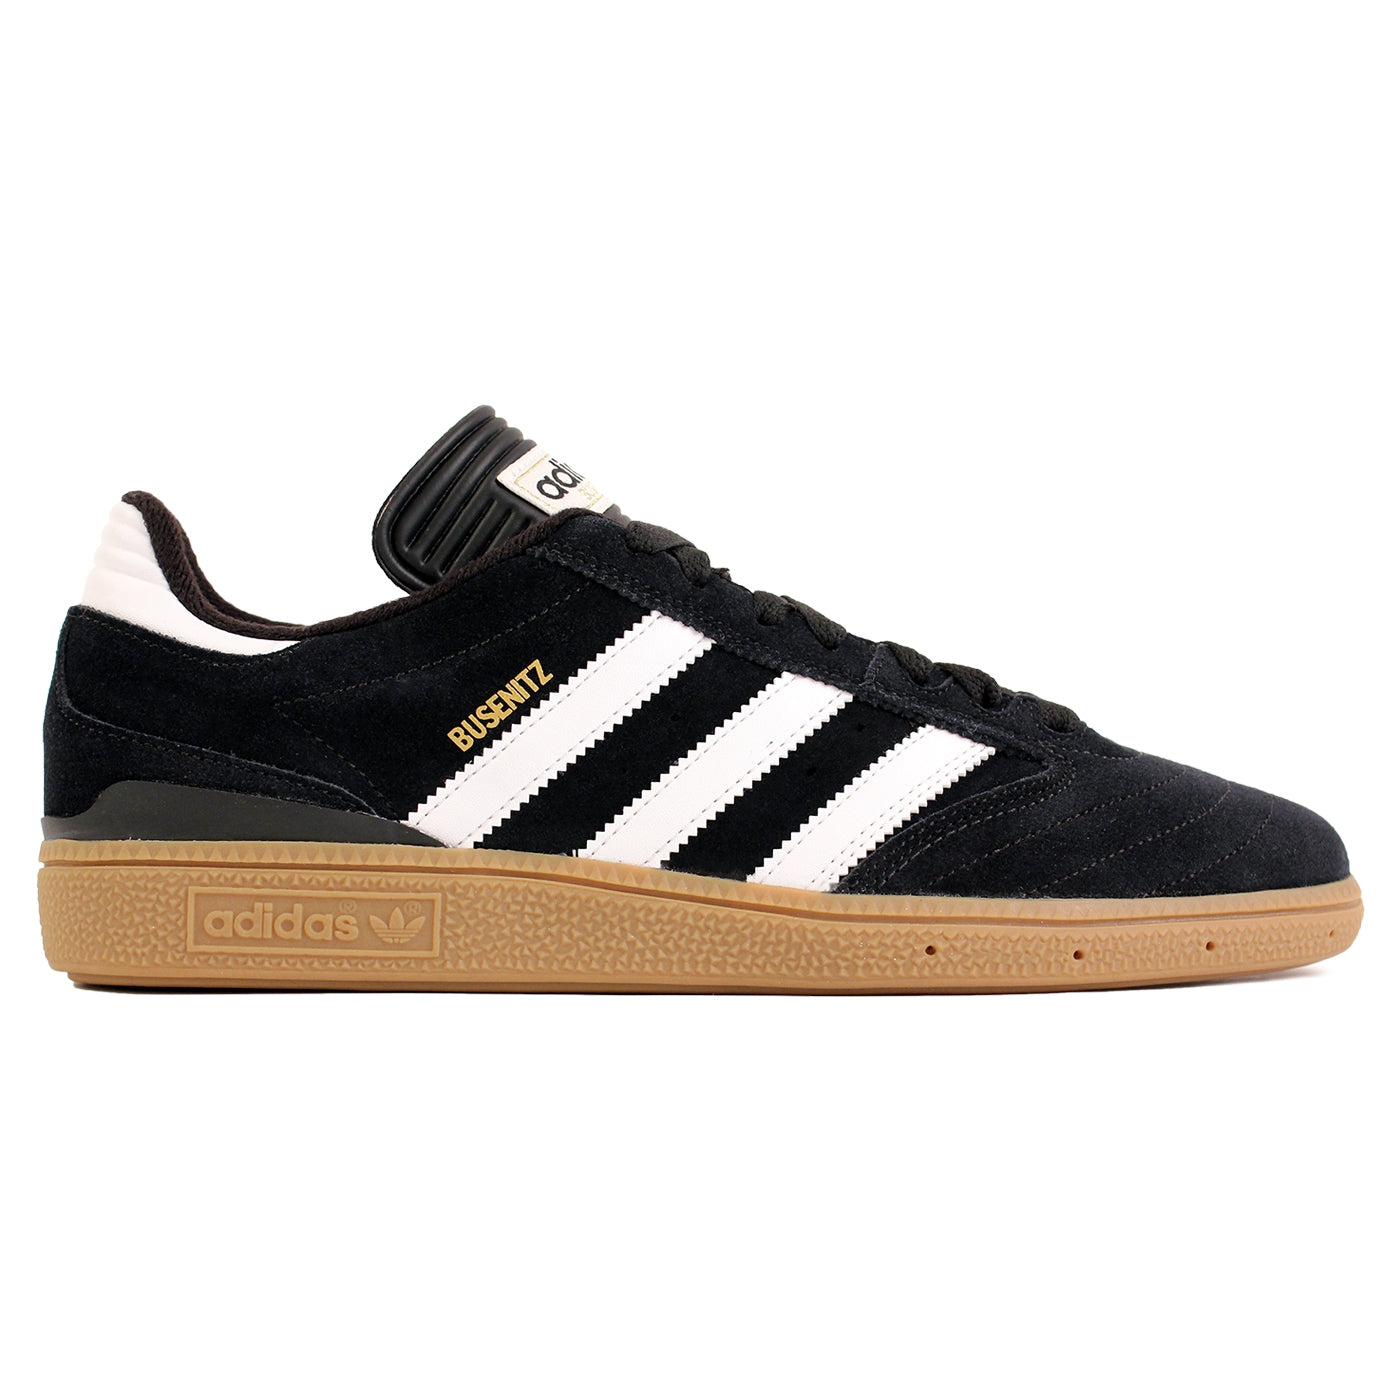 brand new 3791d 8135a Adidas Busenitz Shoes - Black  Running White  Metallic Gold